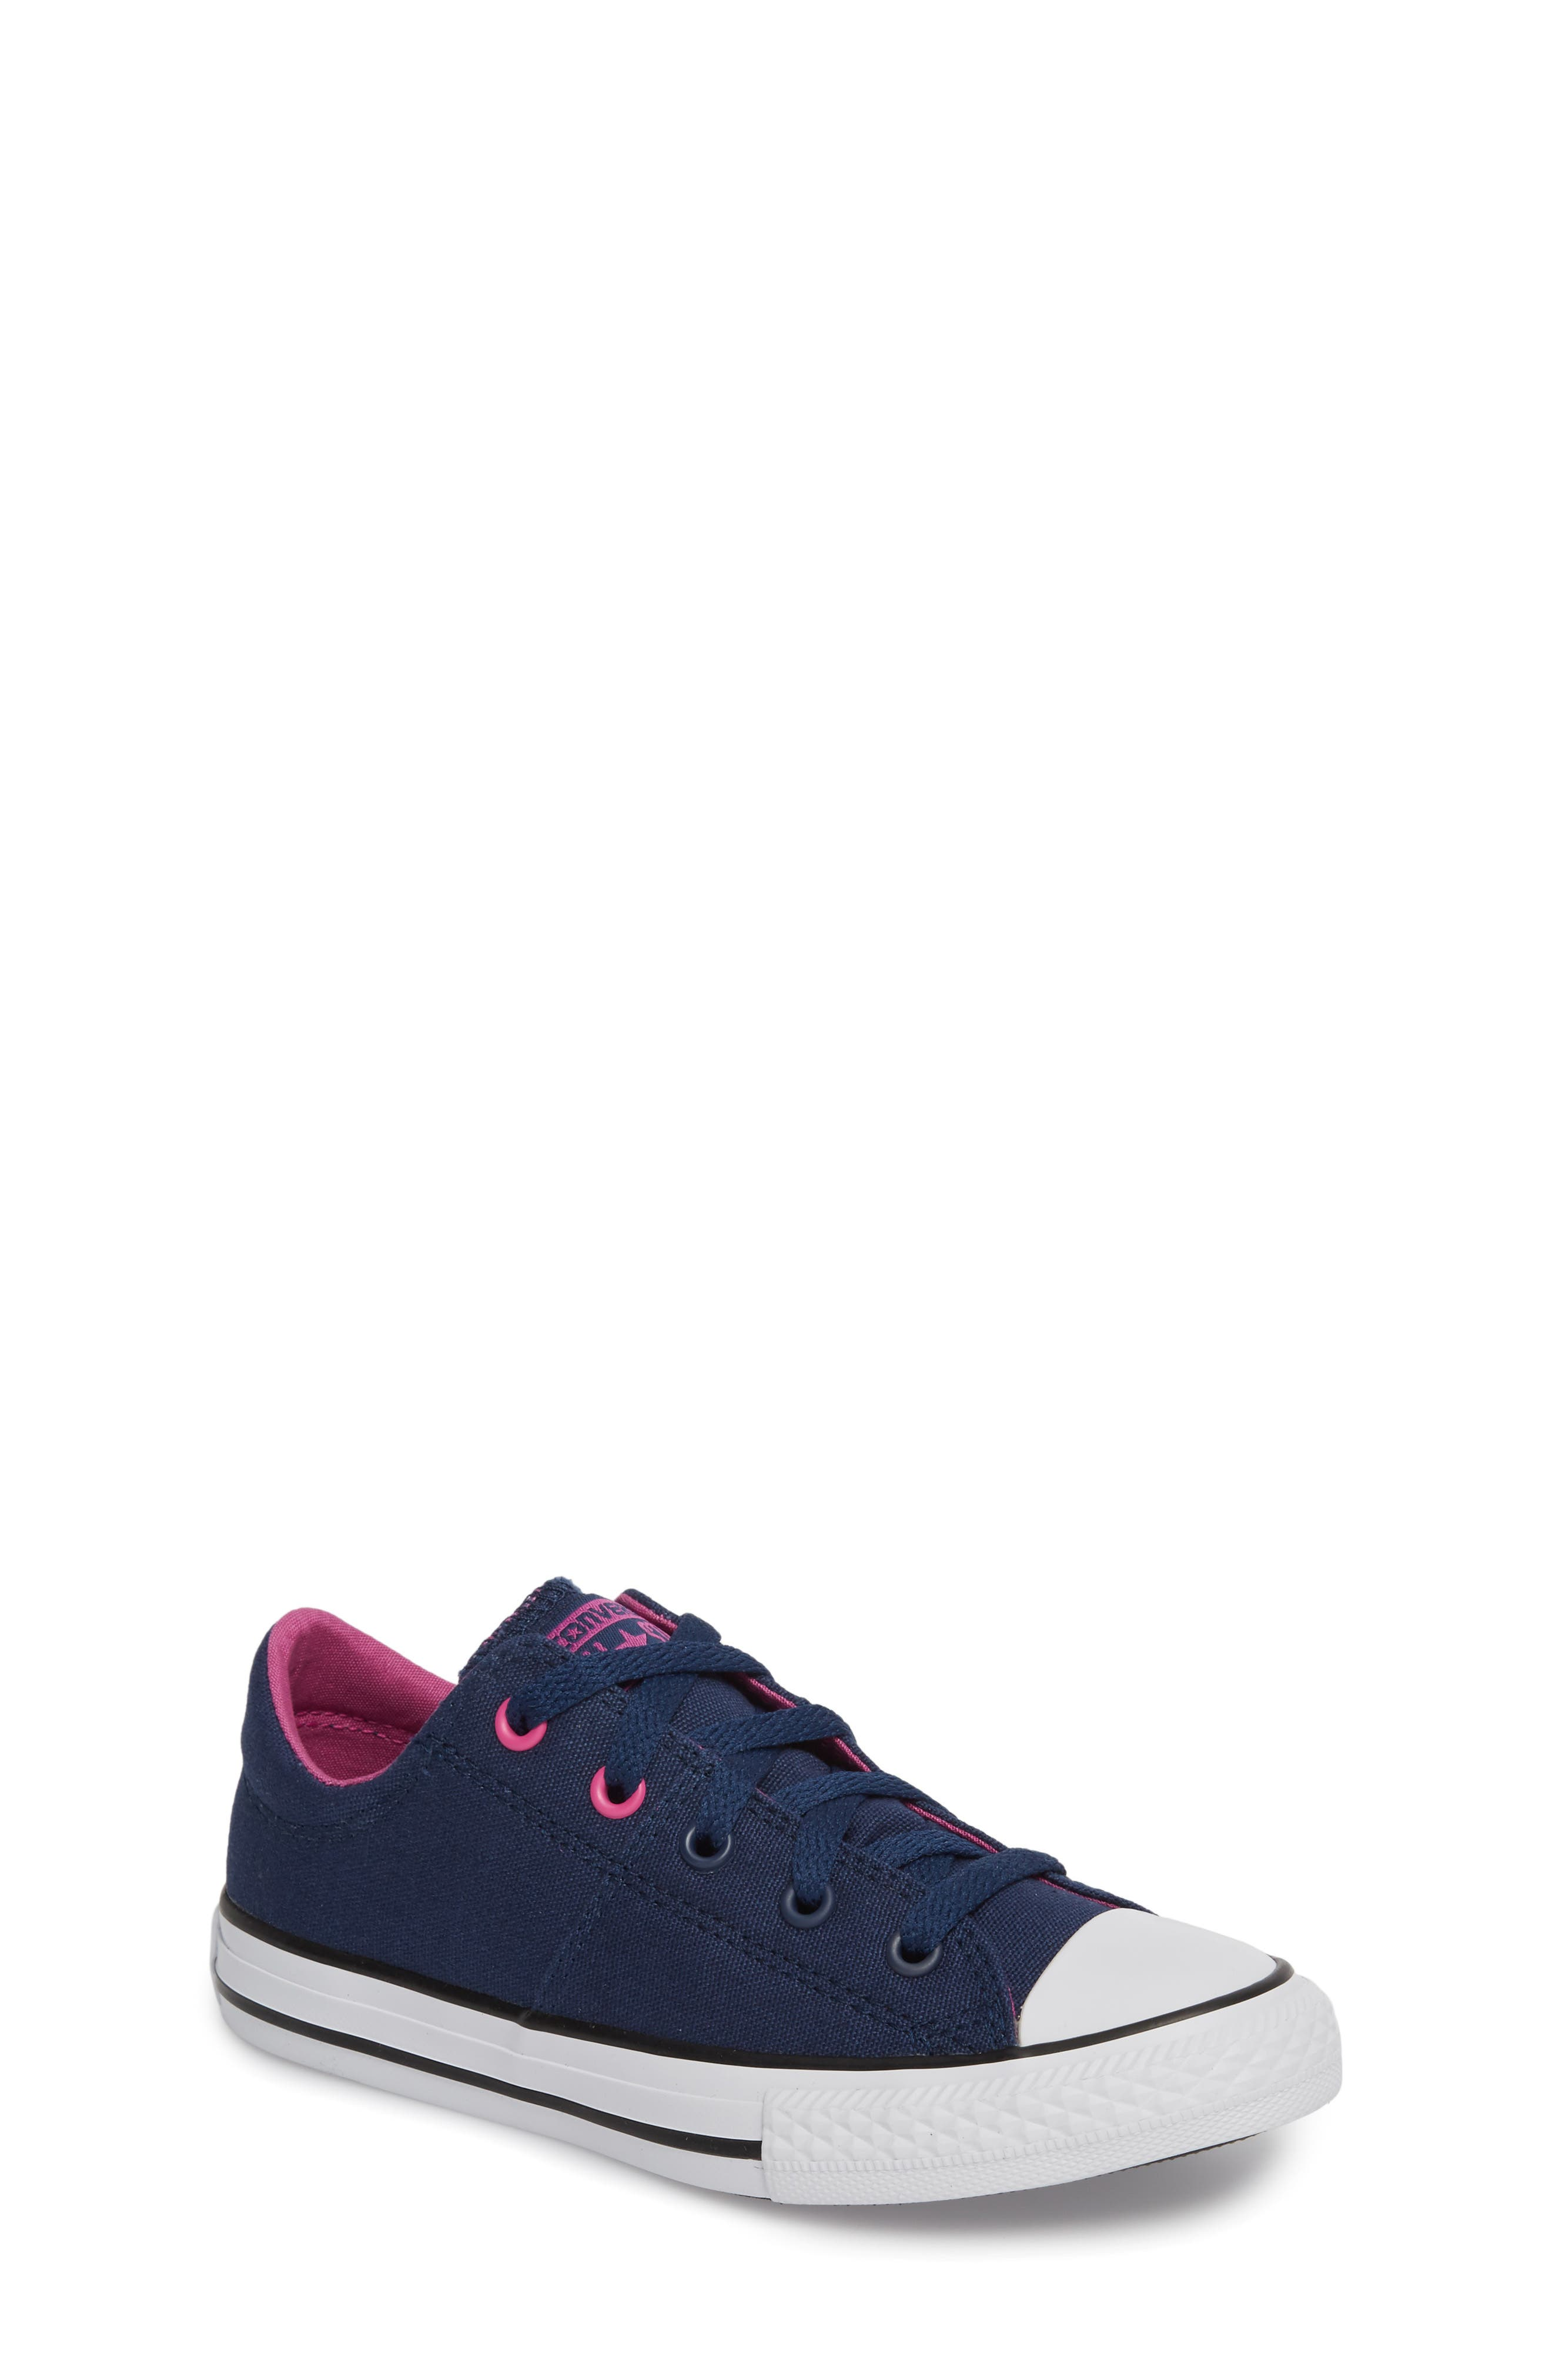 Chuck Taylor<sup>®</sup> All Star<sup>®</sup> Madison Low Top Sneaker,                             Main thumbnail 2, color,